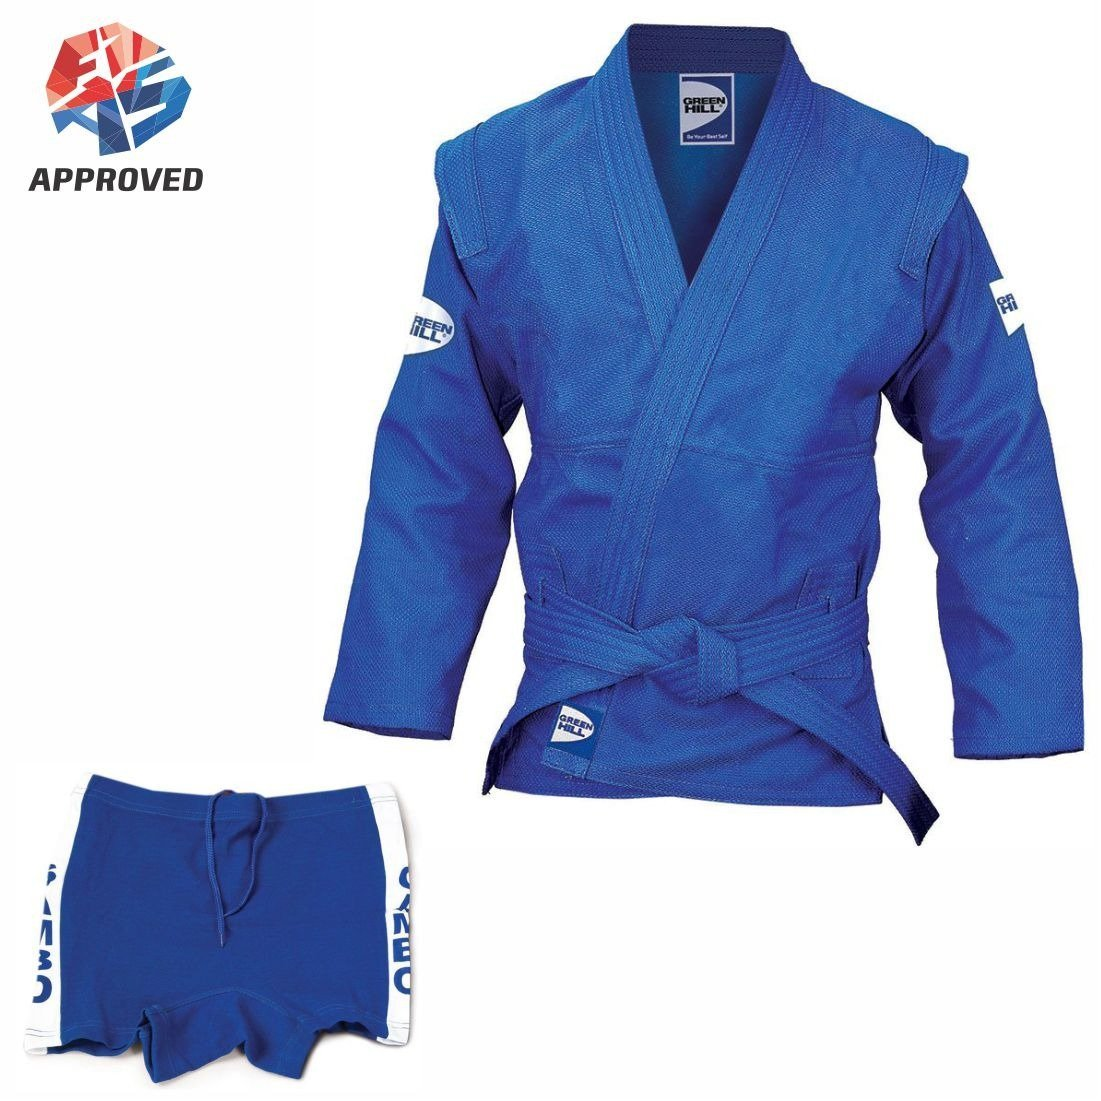 GREEN HILL MultiPurpose FIAS Approved Sambo Suit, Sambo Full Uniform Ideal for Sambo Competition, Training and Martial Arts Greenhill Sports